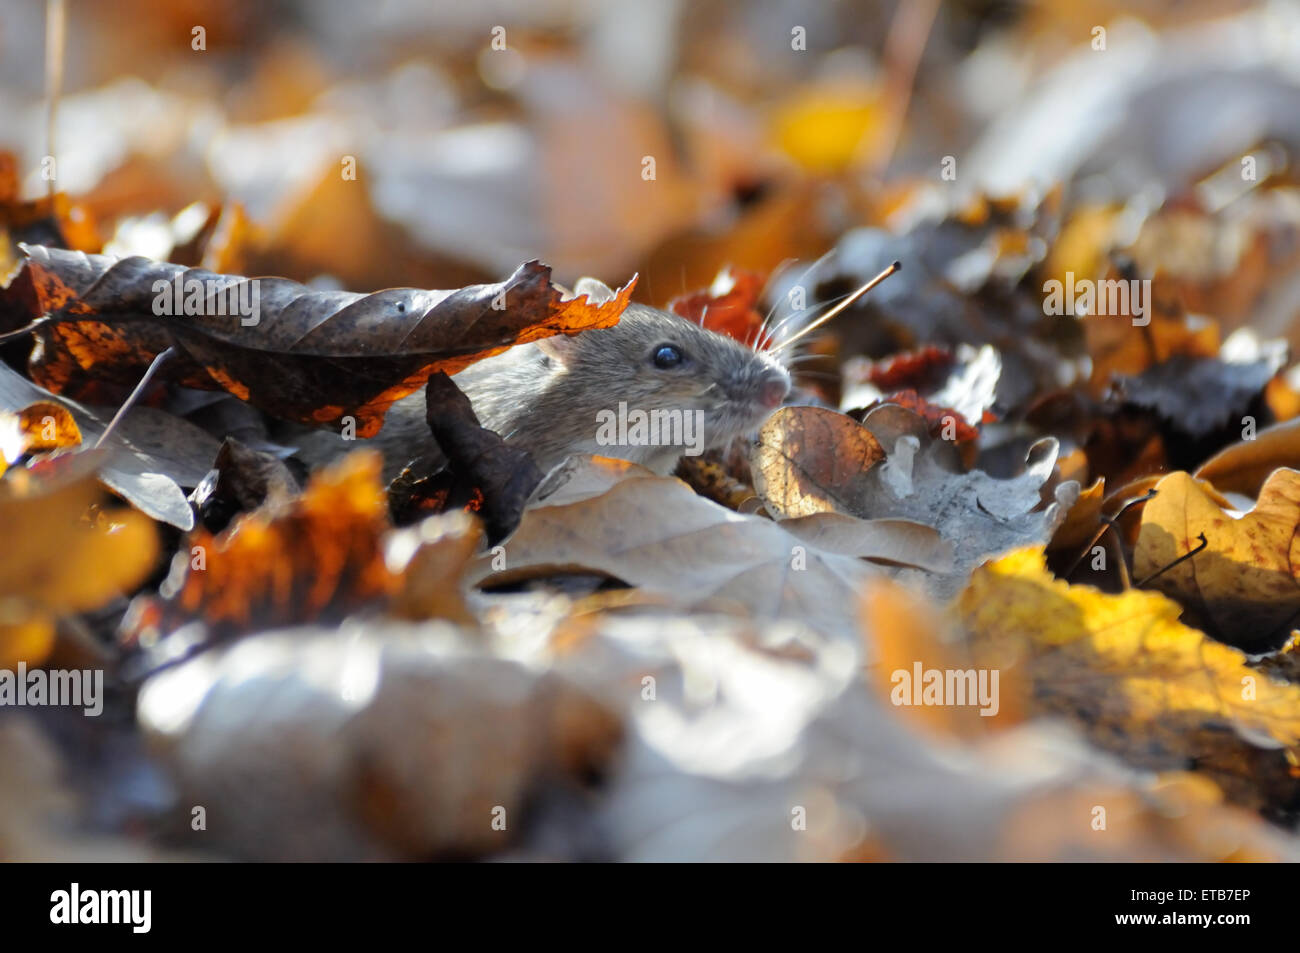 Striped Field Mouse among dry leaves in contrast lightening - Stock Image